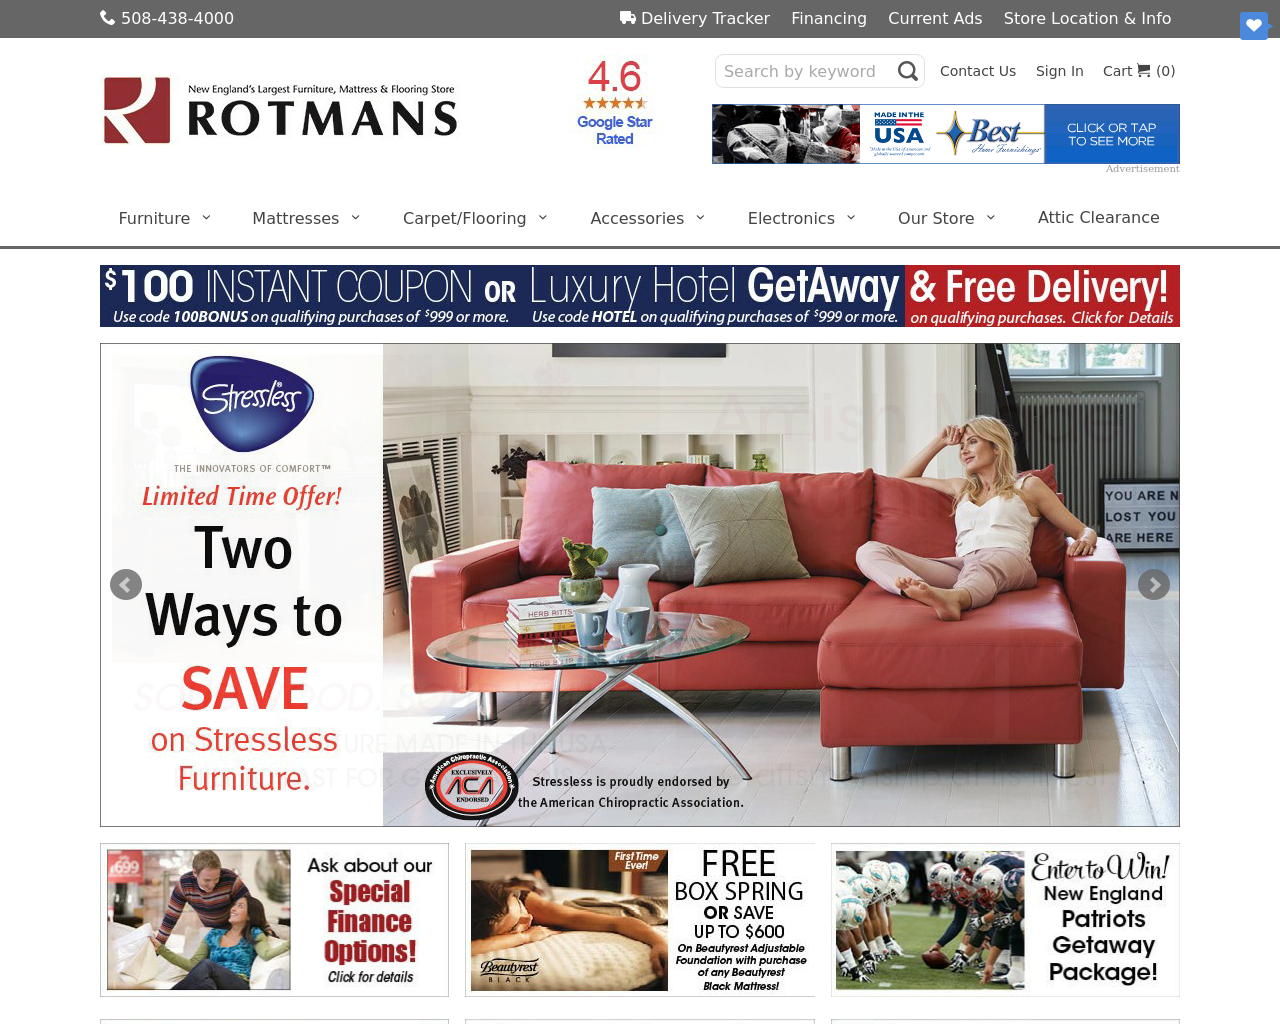 Rotmans-Advertising-Reviews-Pricing